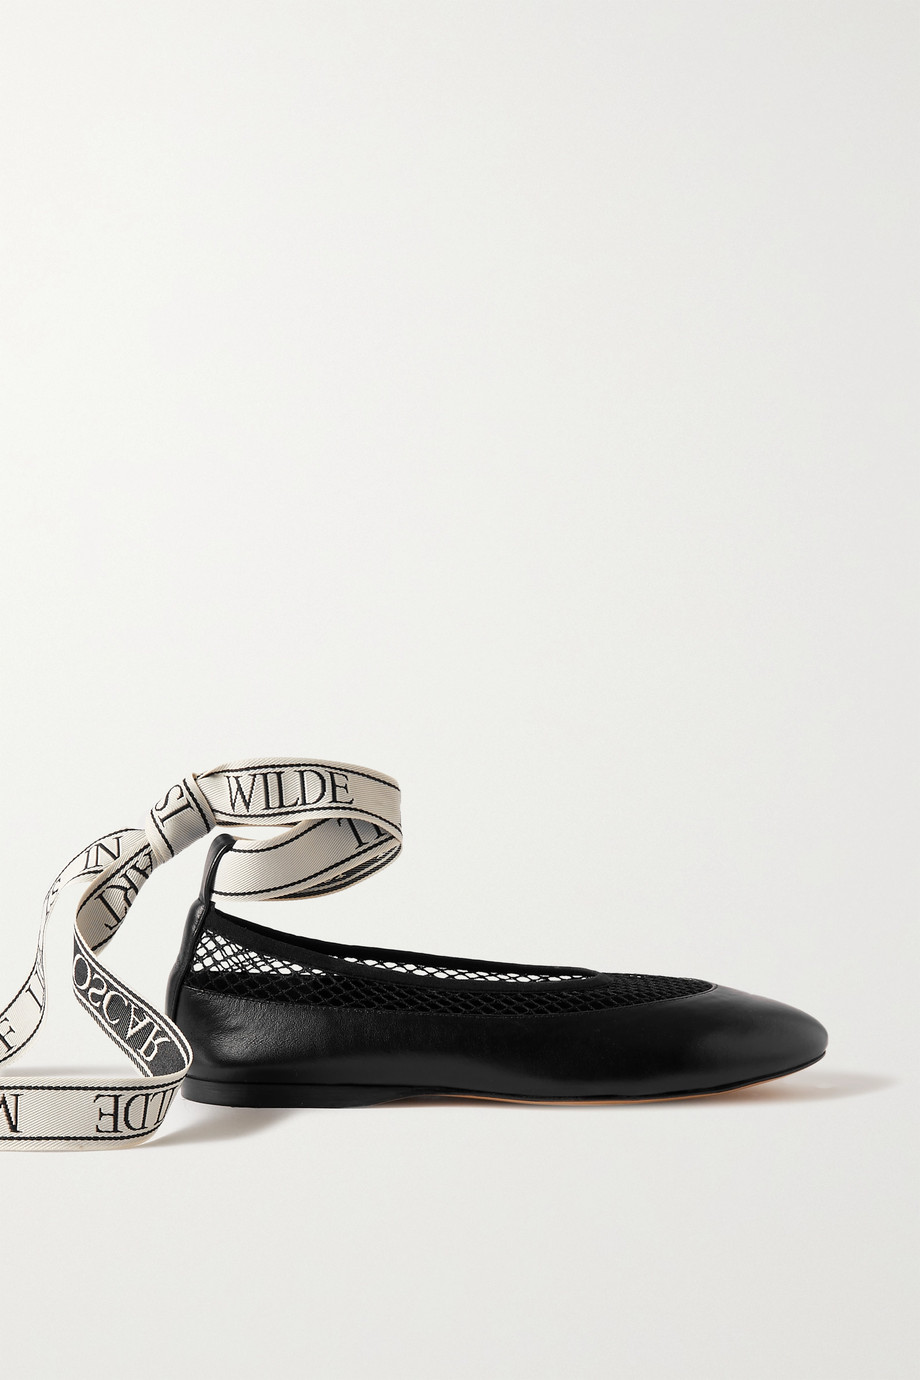 JW ANDERSON Leather, mesh and canvas ballet flats